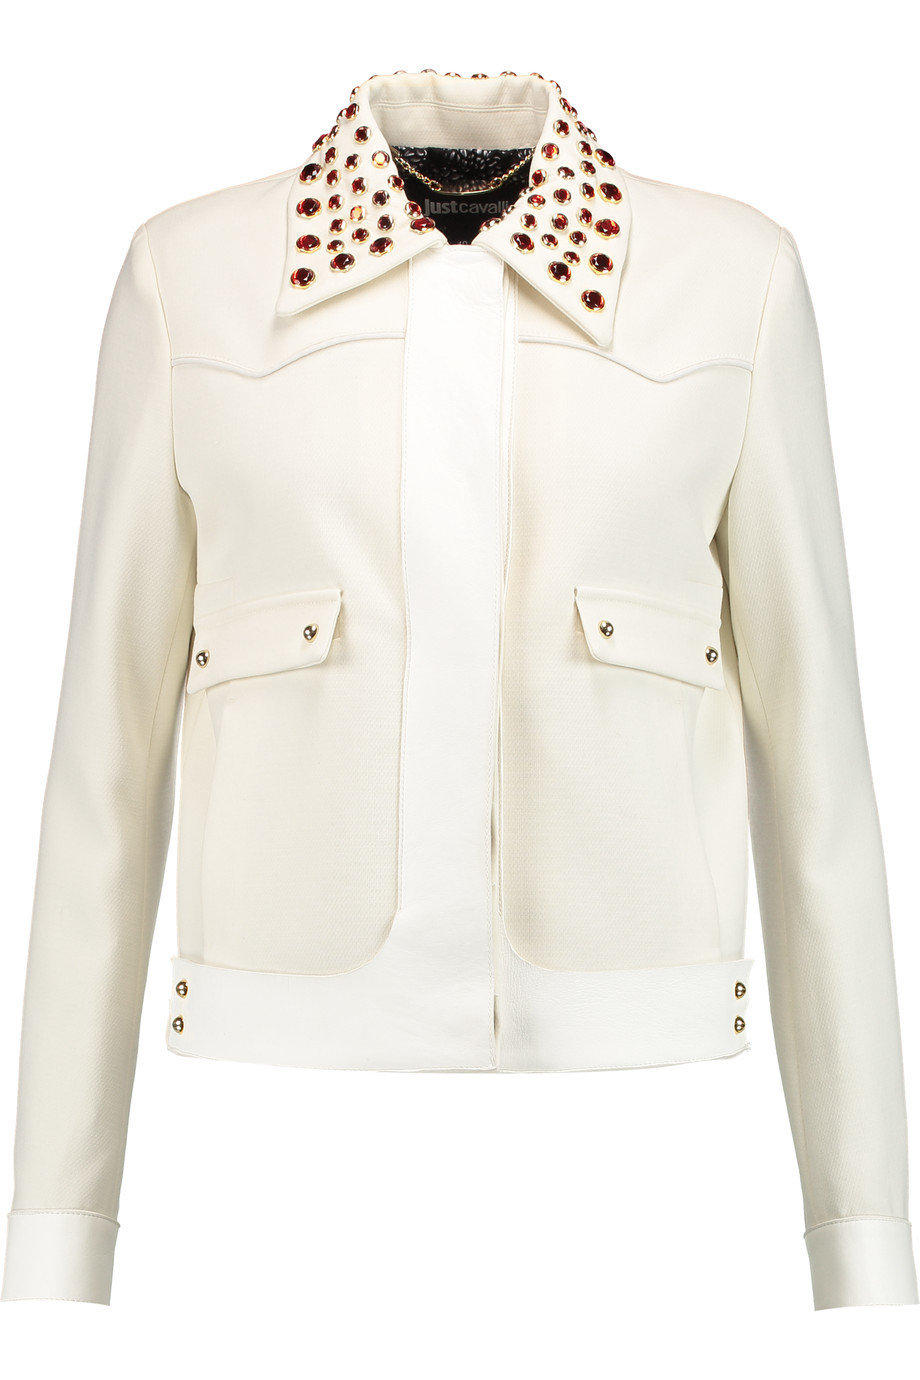 Embellished Suede Trimmed Crepe Jacket Ecru - pattern: plain; bust detail: added detail/embellishment at bust; style: denim; fit: slim fit; predominant colour: ivory/cream; occasions: casual, evening; length: standard; fibres: leather - 100%; collar: shirt collar/peter pan/zip with opening; sleeve length: long sleeve; sleeve style: standard; collar break: high/illusion of break when open; pattern type: fabric; texture group: suede; embellishment: jewels/stone; season: s/s 2016